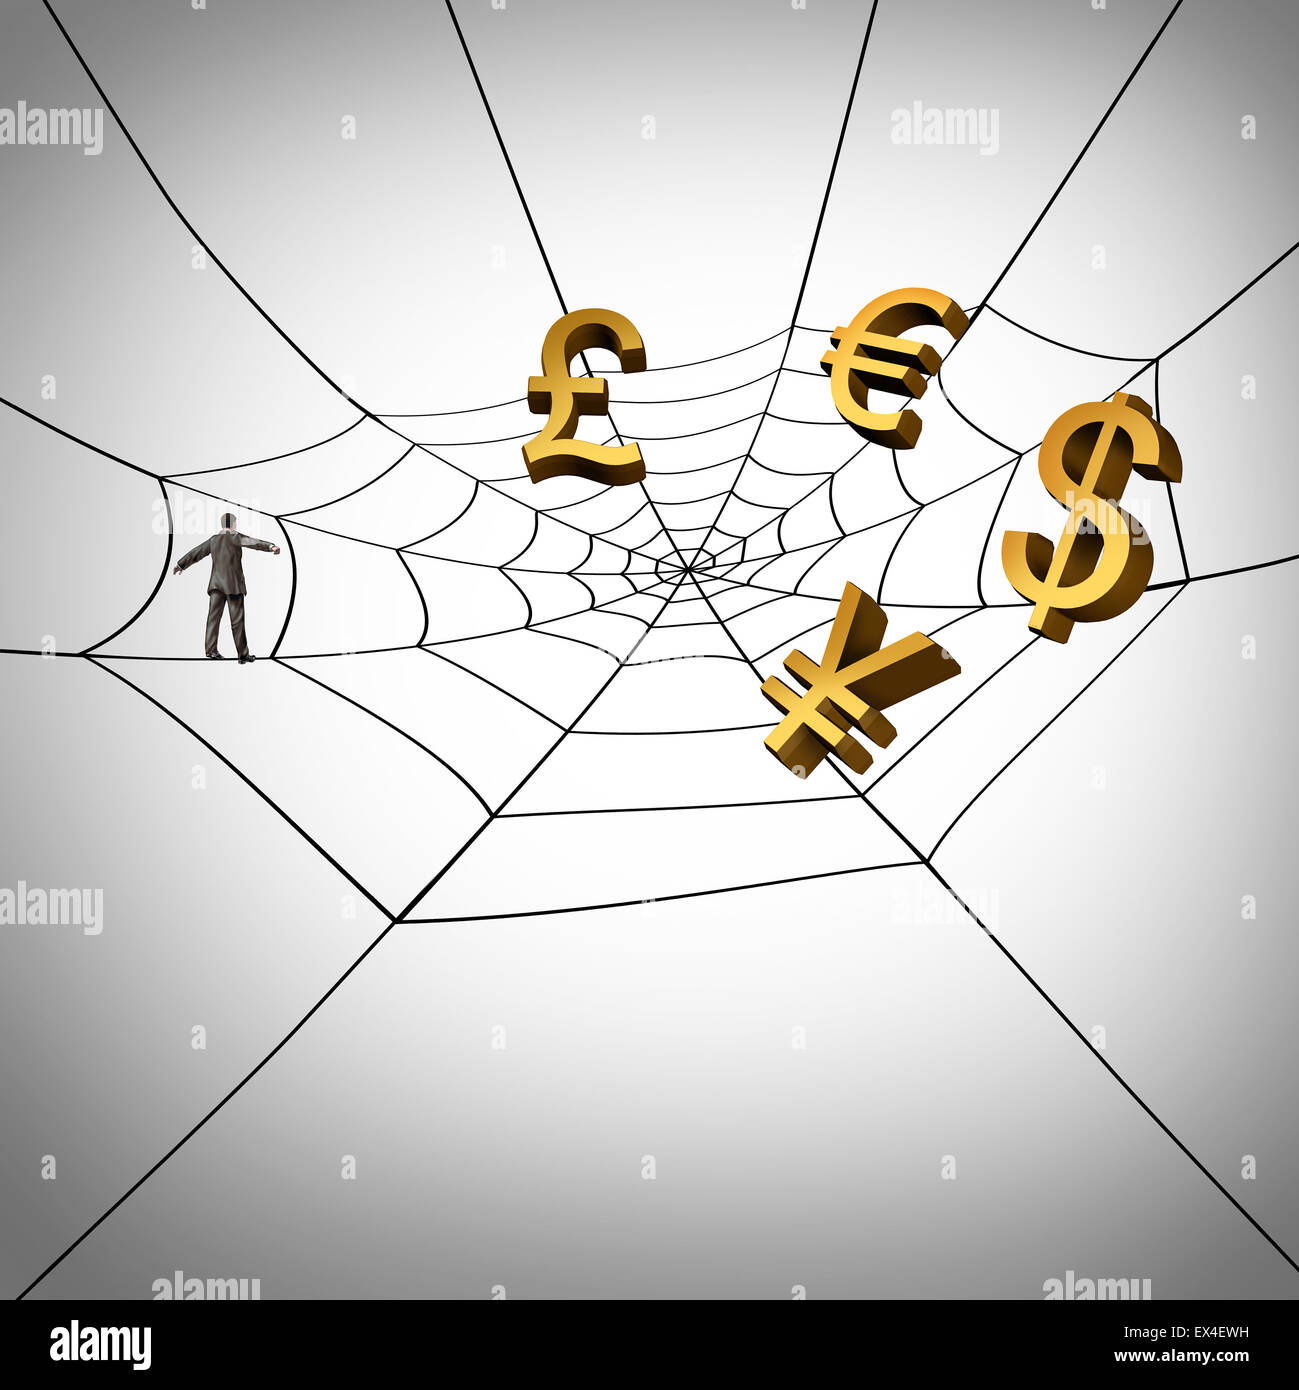 Web business concept and earning global money from the internet as a businessman walking on a spider web symbol - Stock Image